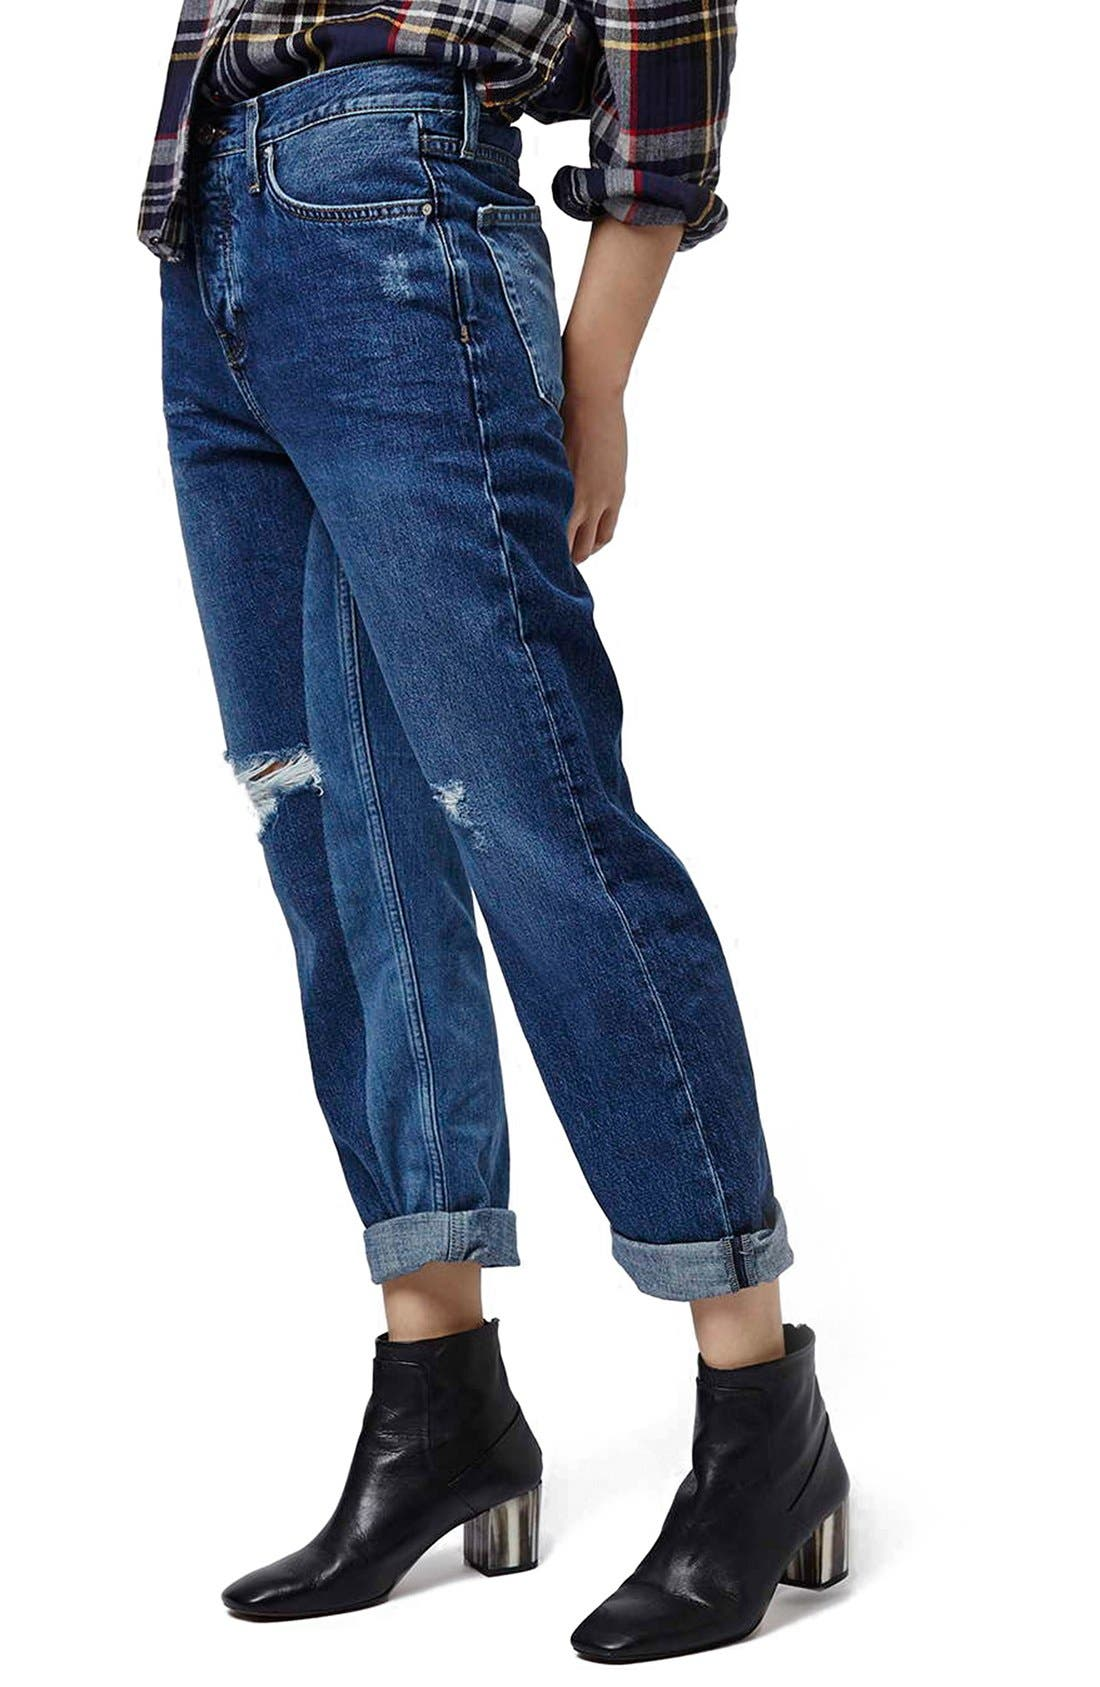 Main Image - Topshop 'Patch' Two Tone High Rise Boyfriend Jeans